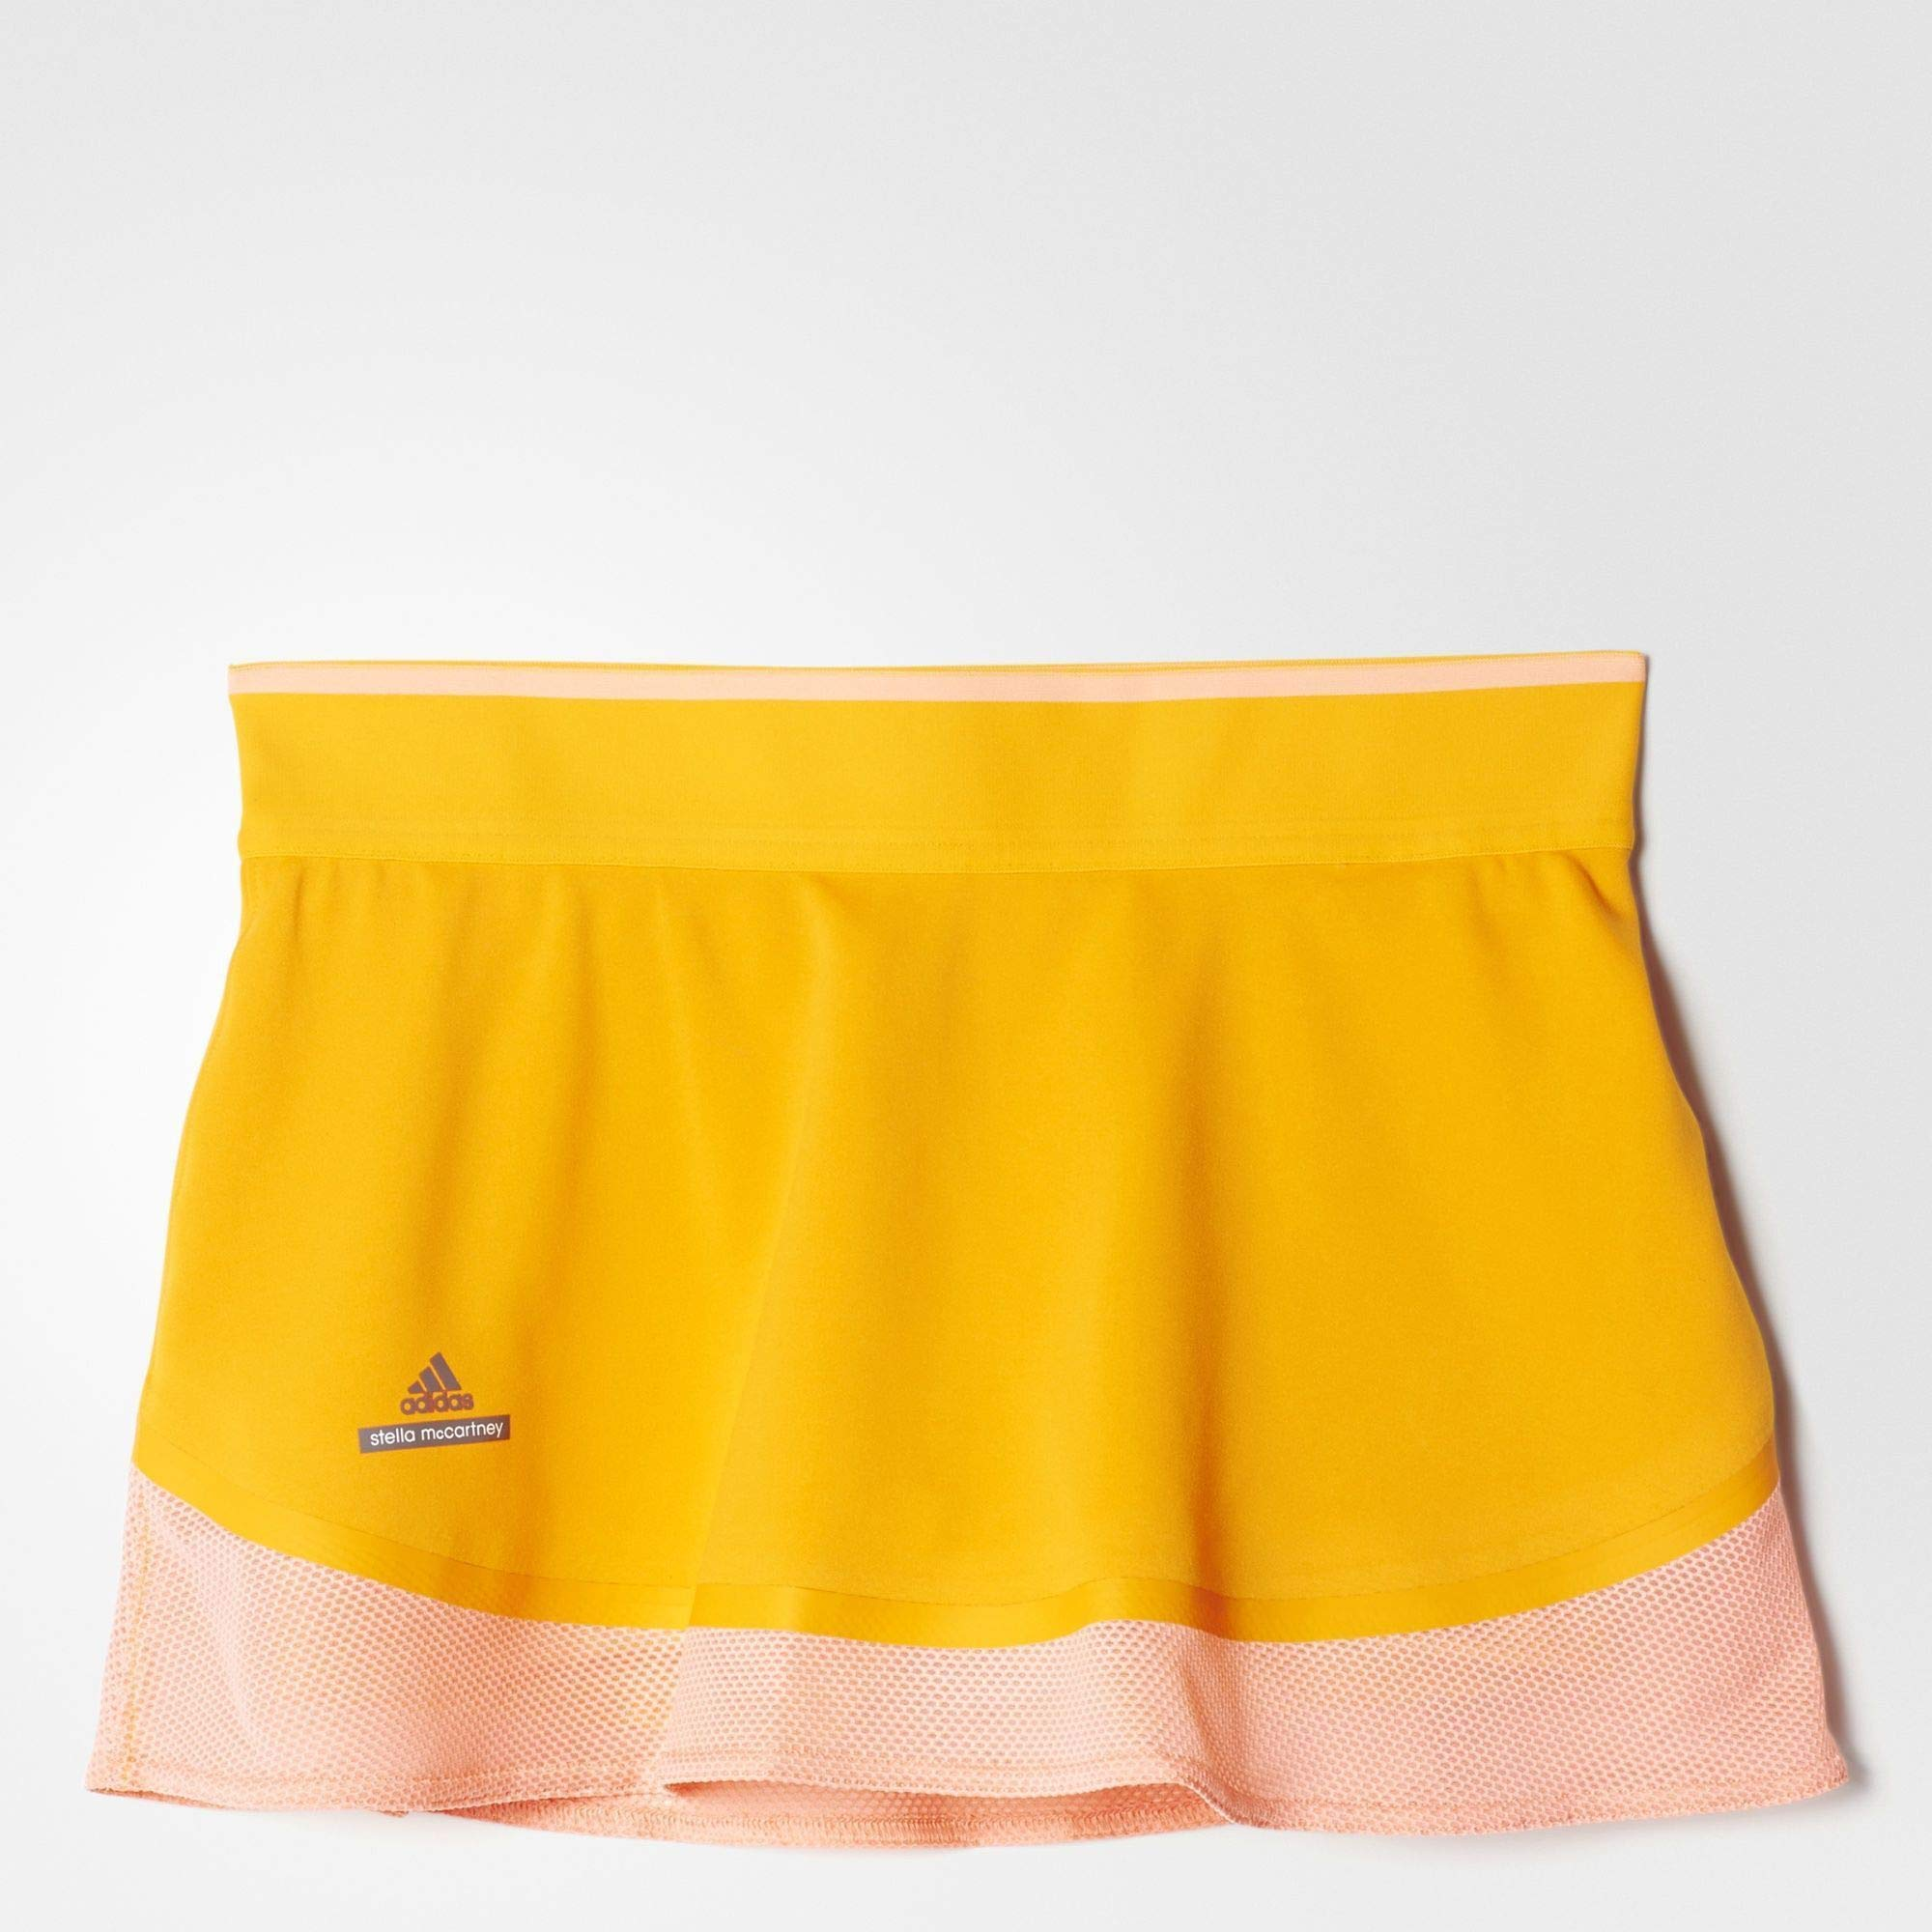 Adidas Stella McCartney Barricade Women's Skort Gold/Orange